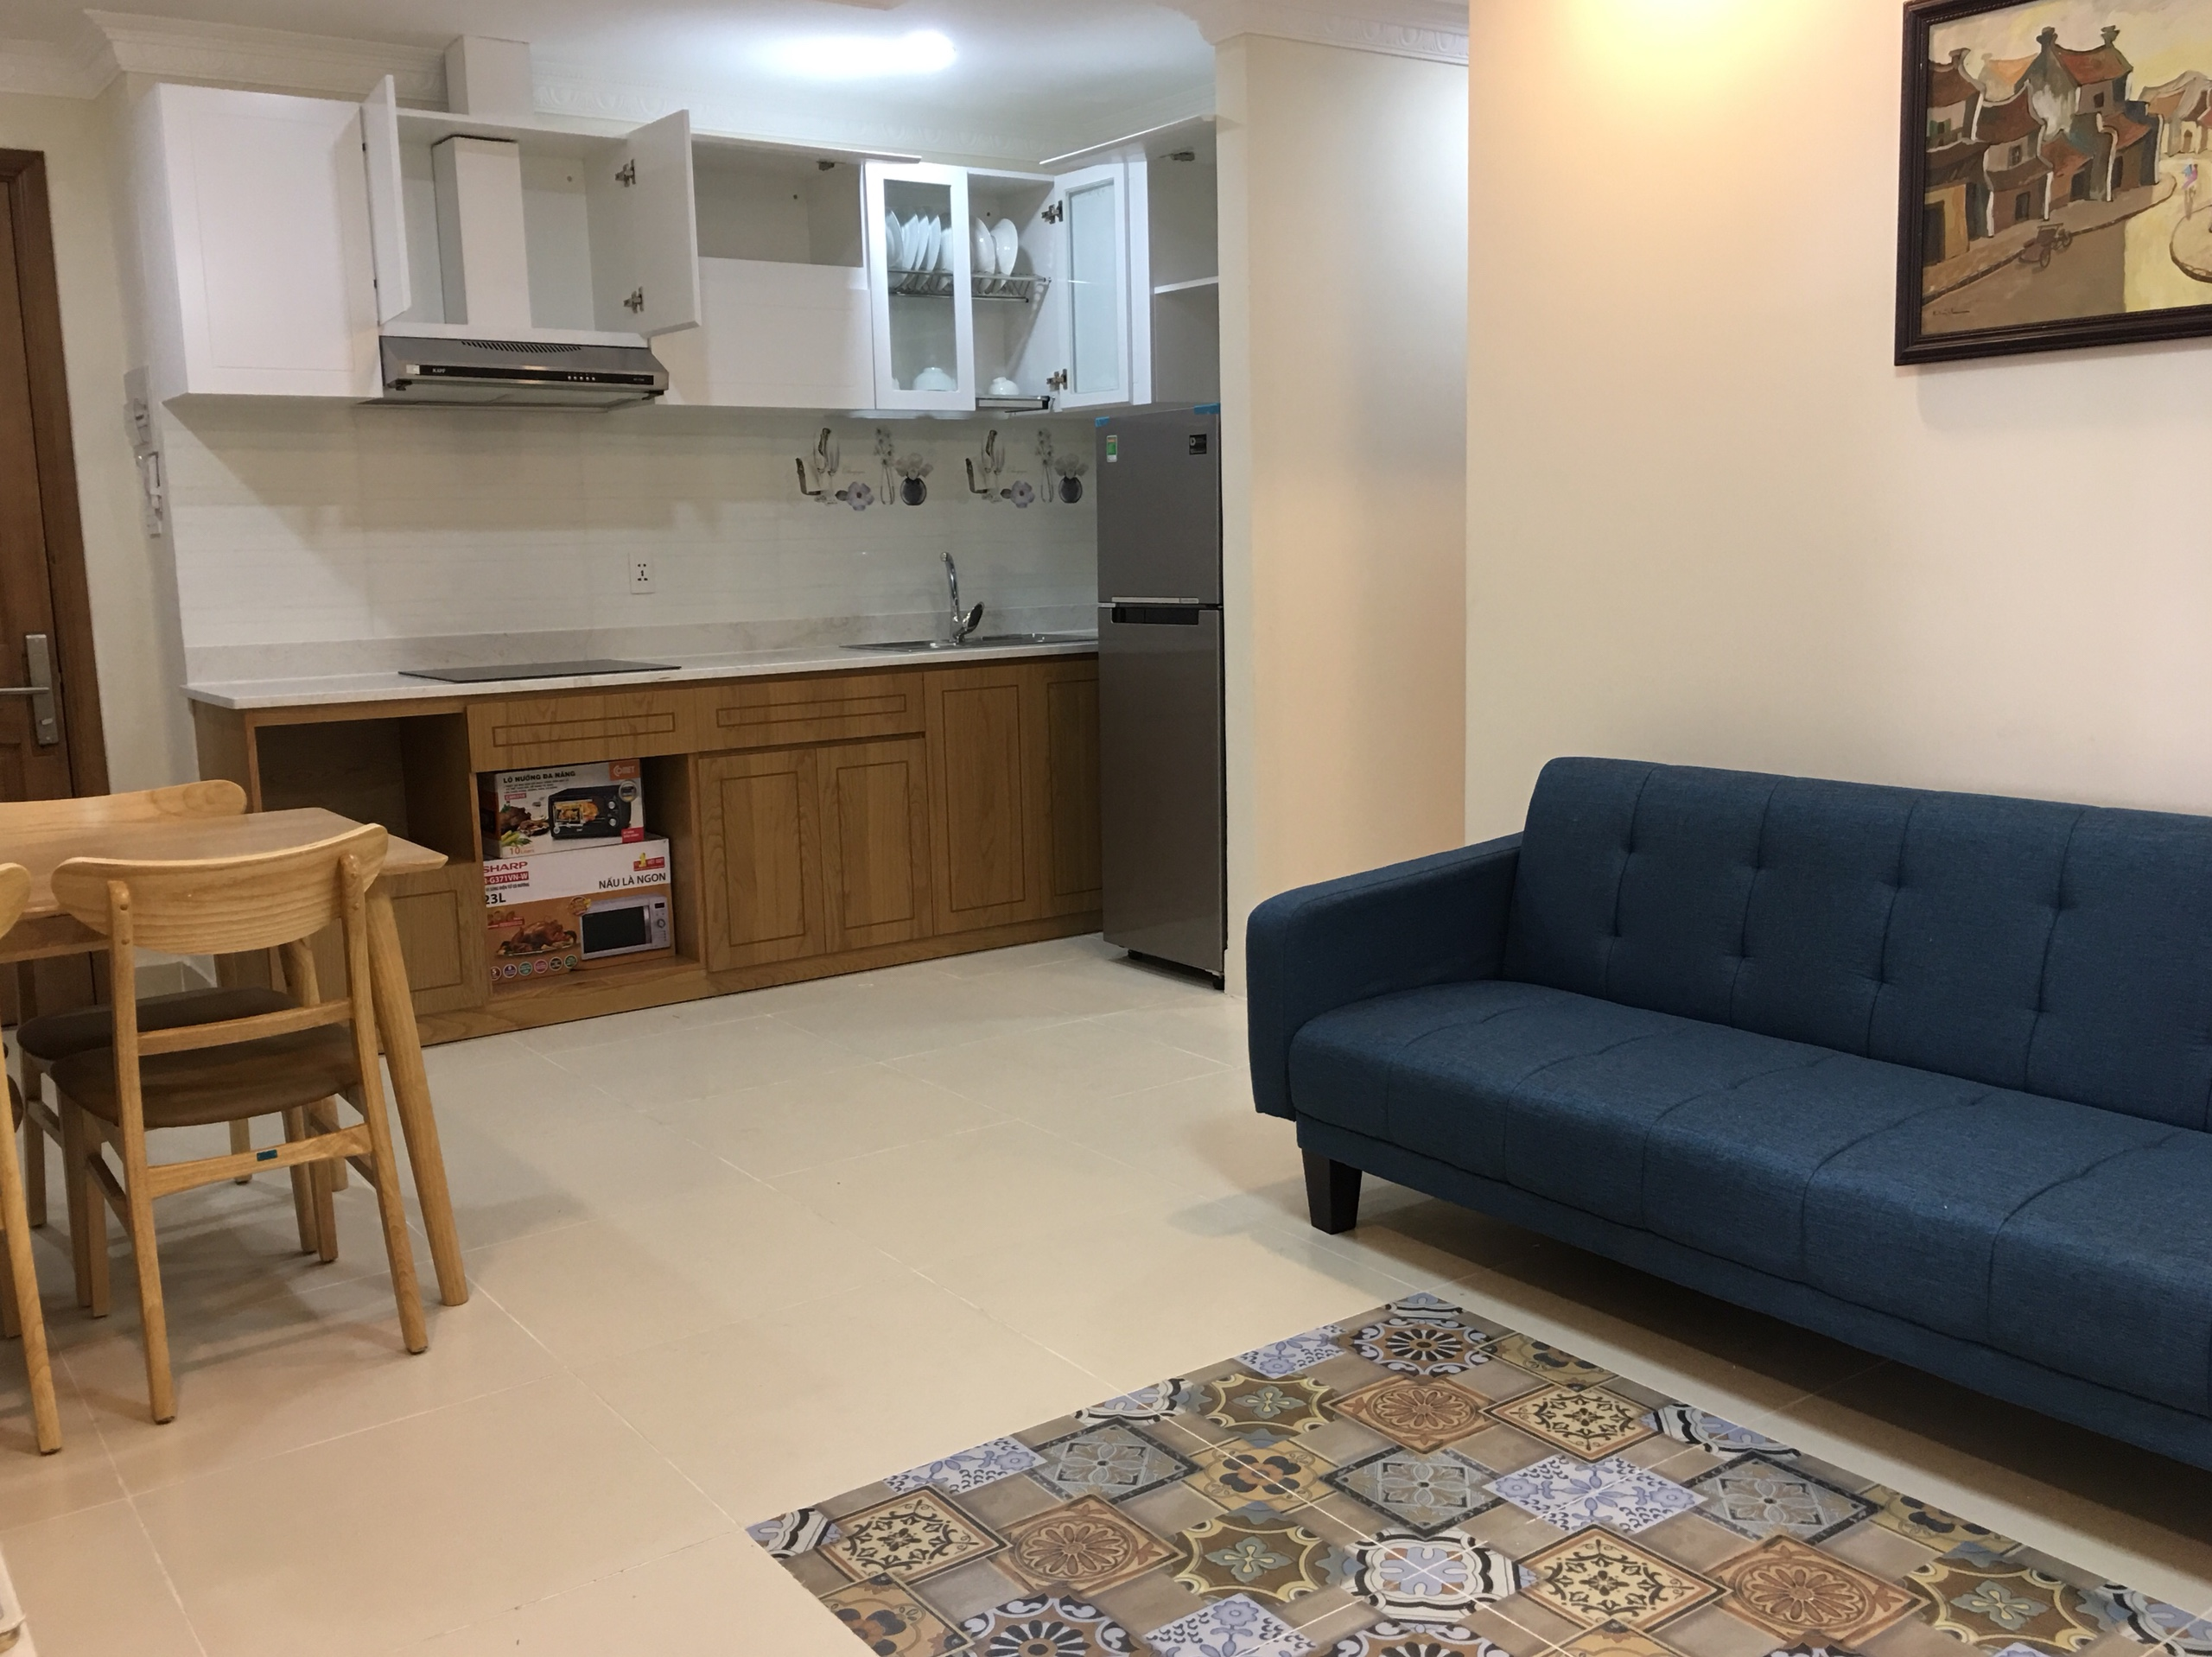 Serviced apartment for rent D299477 (13)